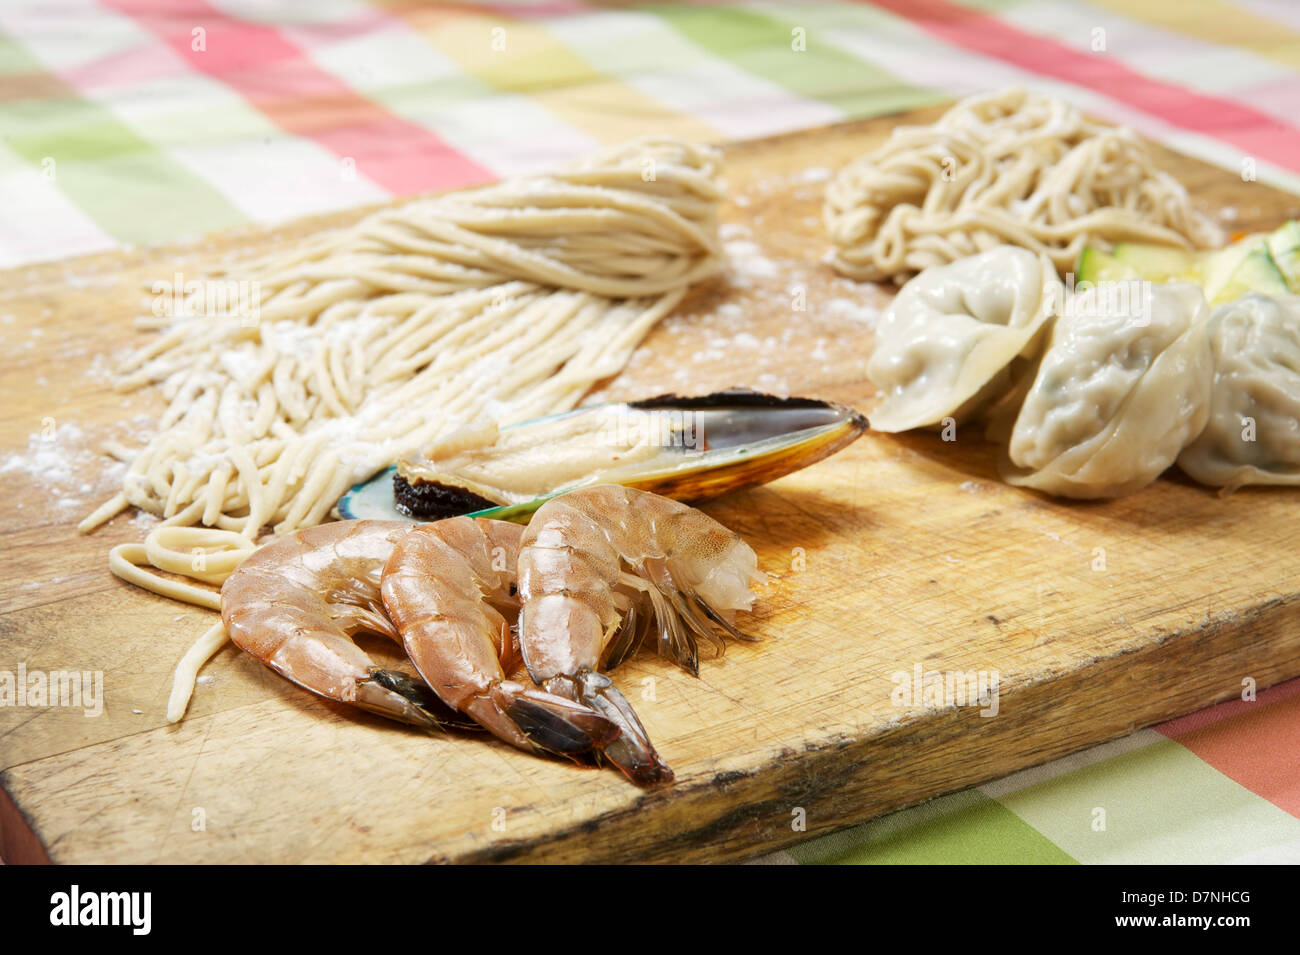 Shrimp, mussels, dim sum, and pasta on a cutting board.  Korean restaurant - Stock Image